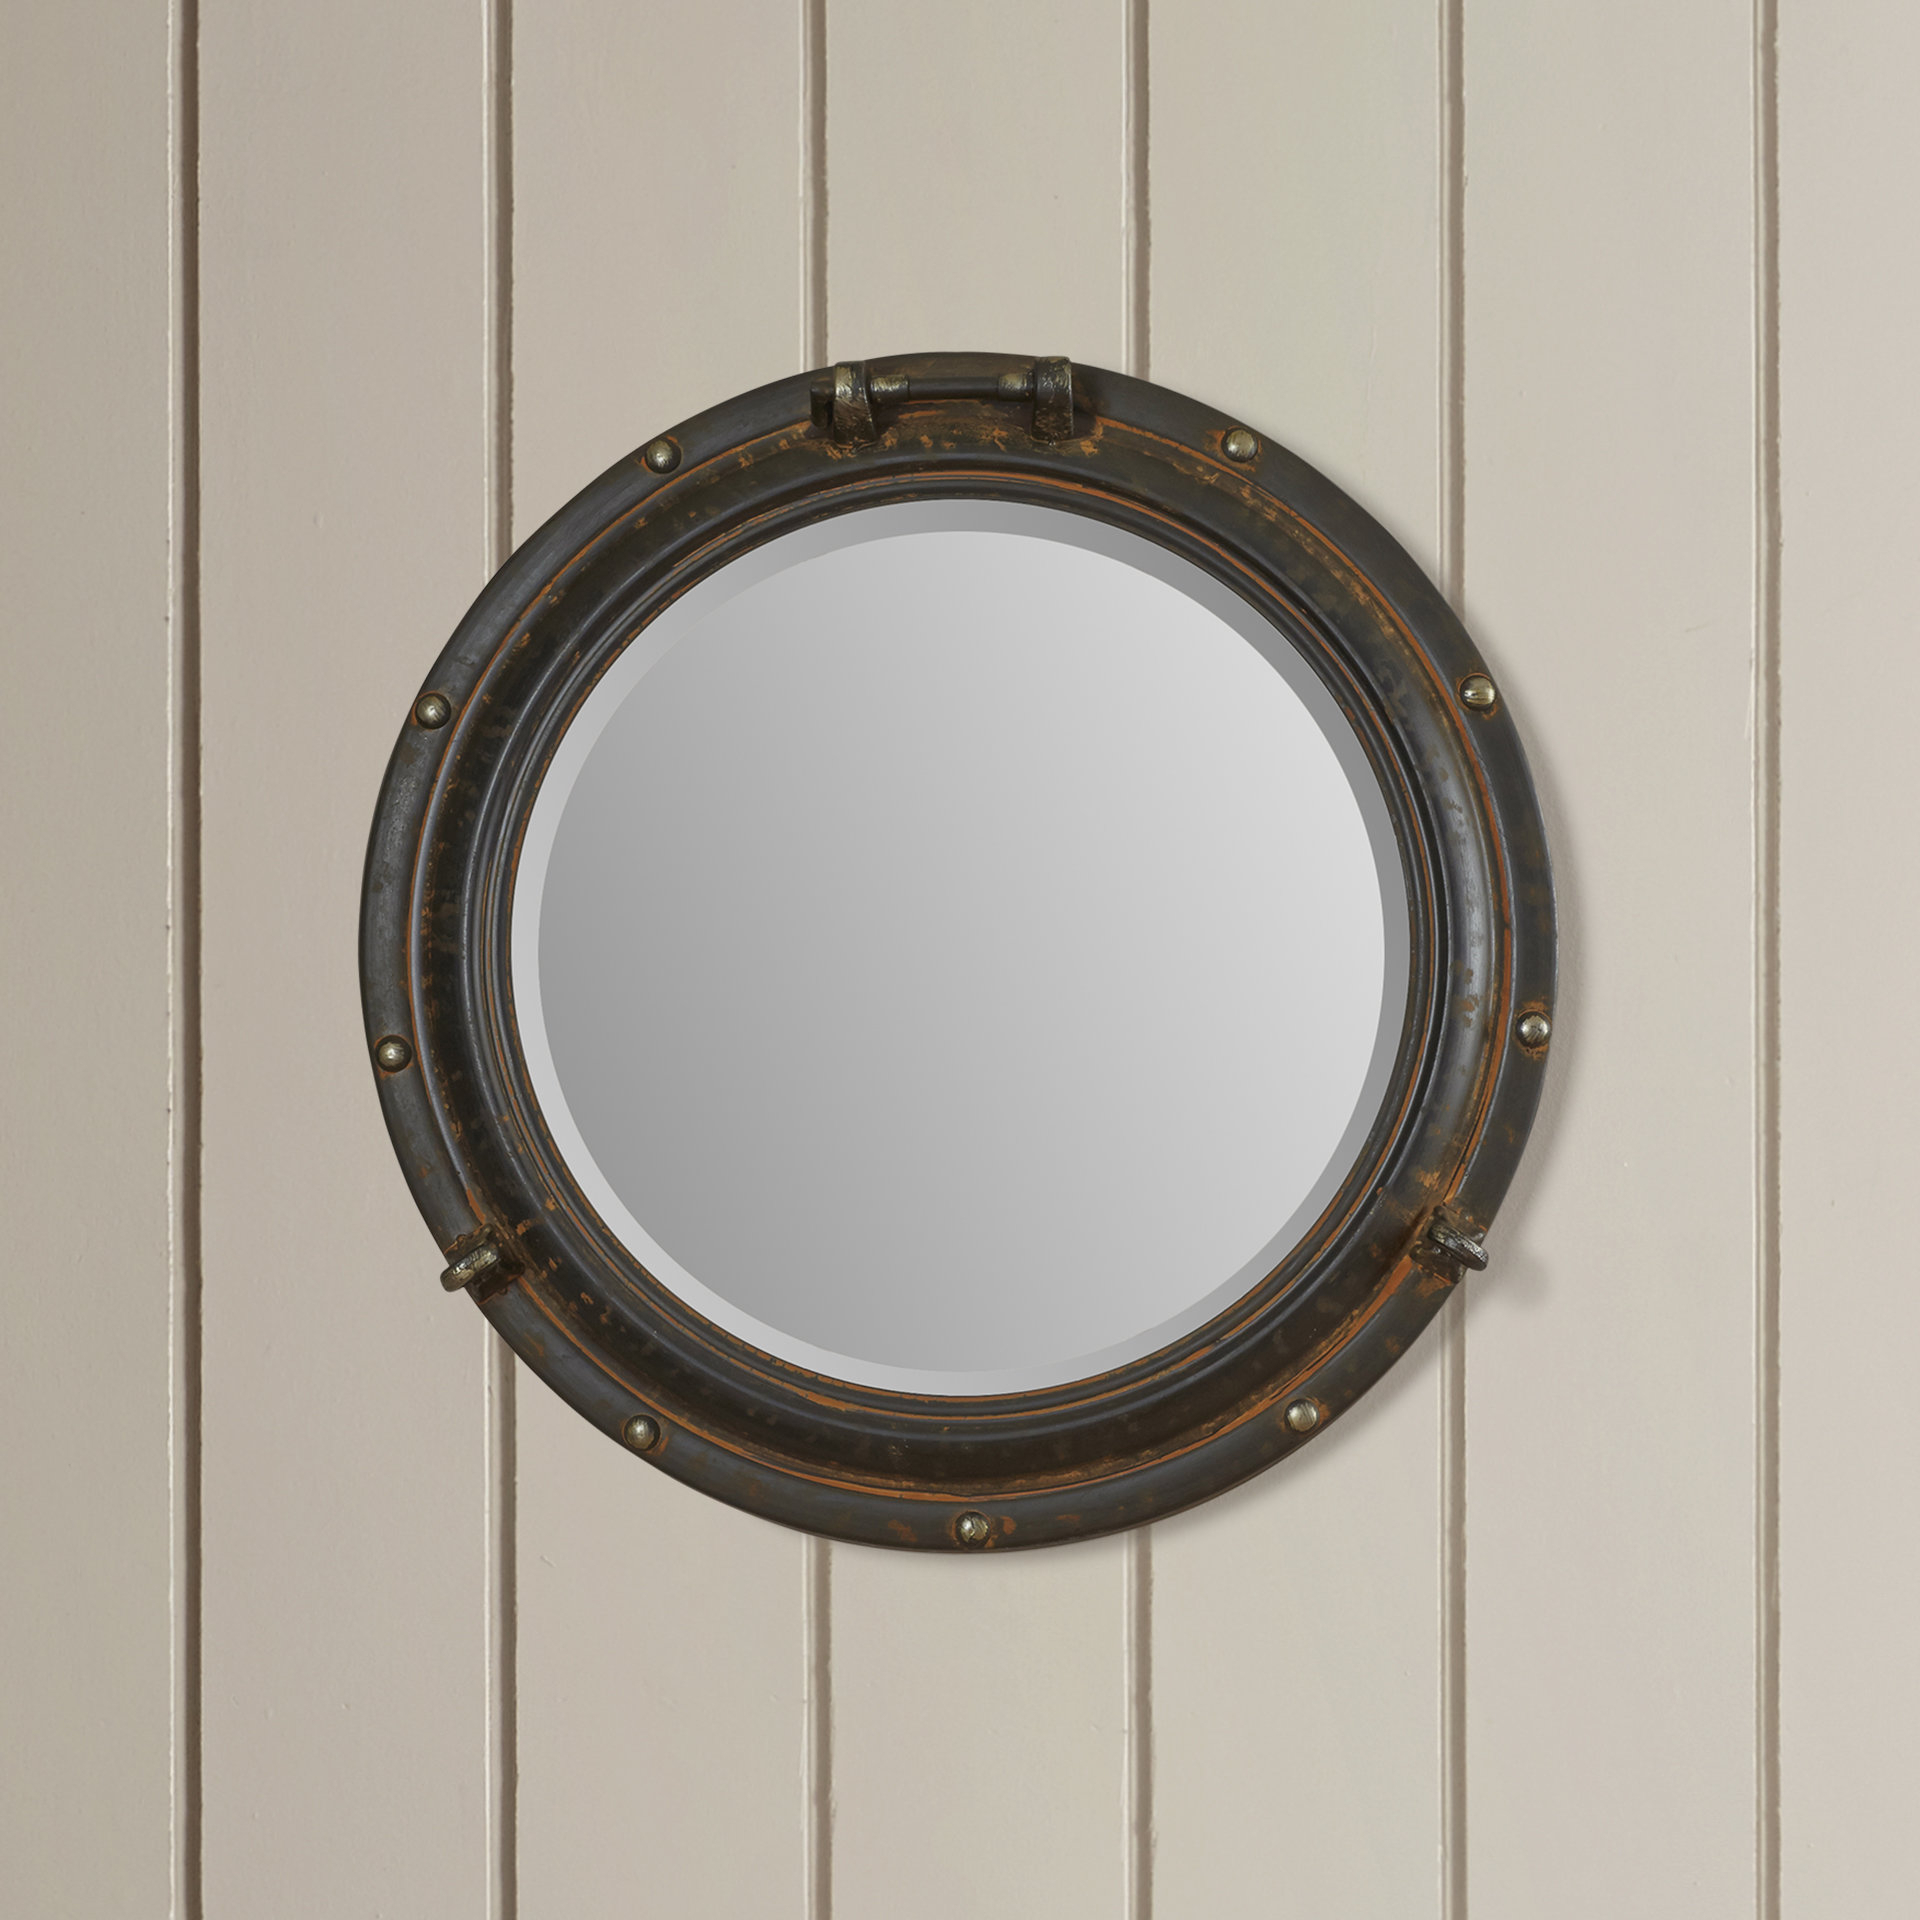 Beachcrest Home Alie Traditional Beveled Distressed Accent Mirror Regarding Alie Traditional Beveled Distressed Accent Mirrors (Image 9 of 30)